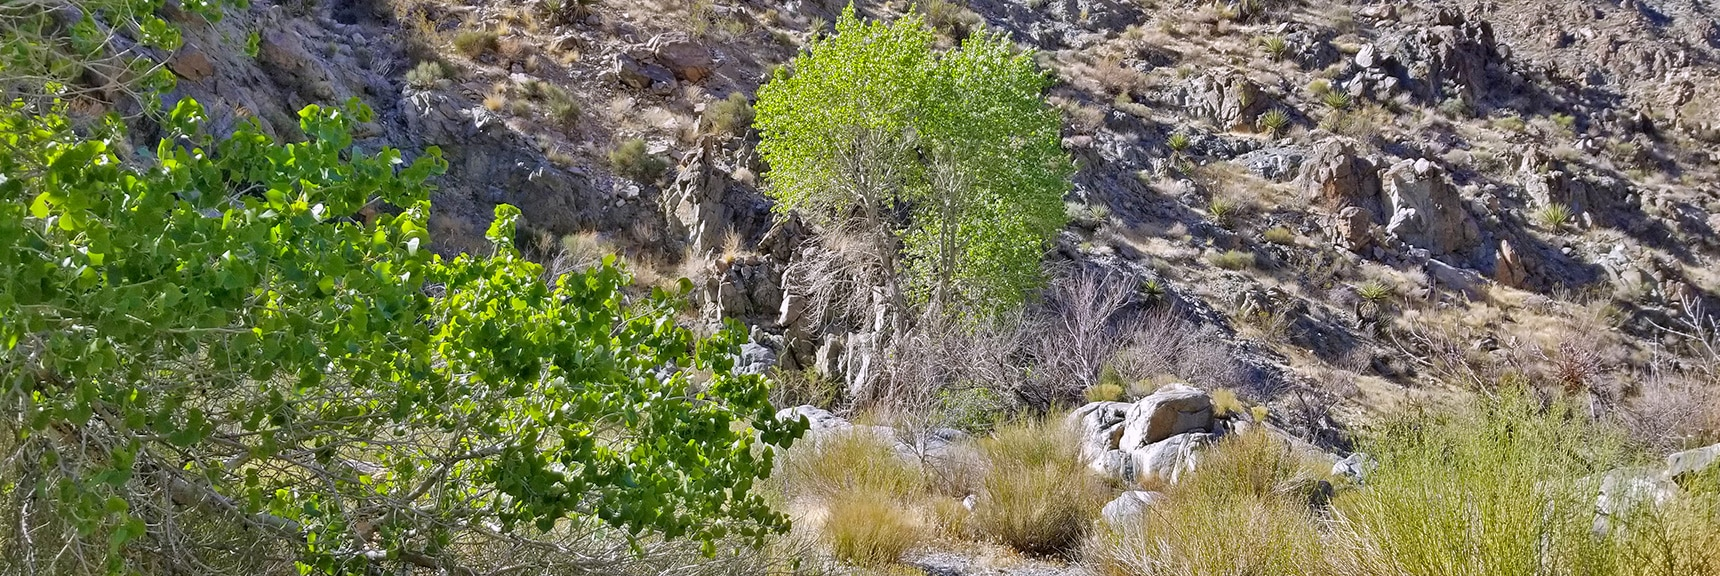 First Spring in Horse Thief Canyon   Horse Thief Canyon Loop   Mt. Wilson   Black Mountains   Lake Mead National Recreation Area, Arizona